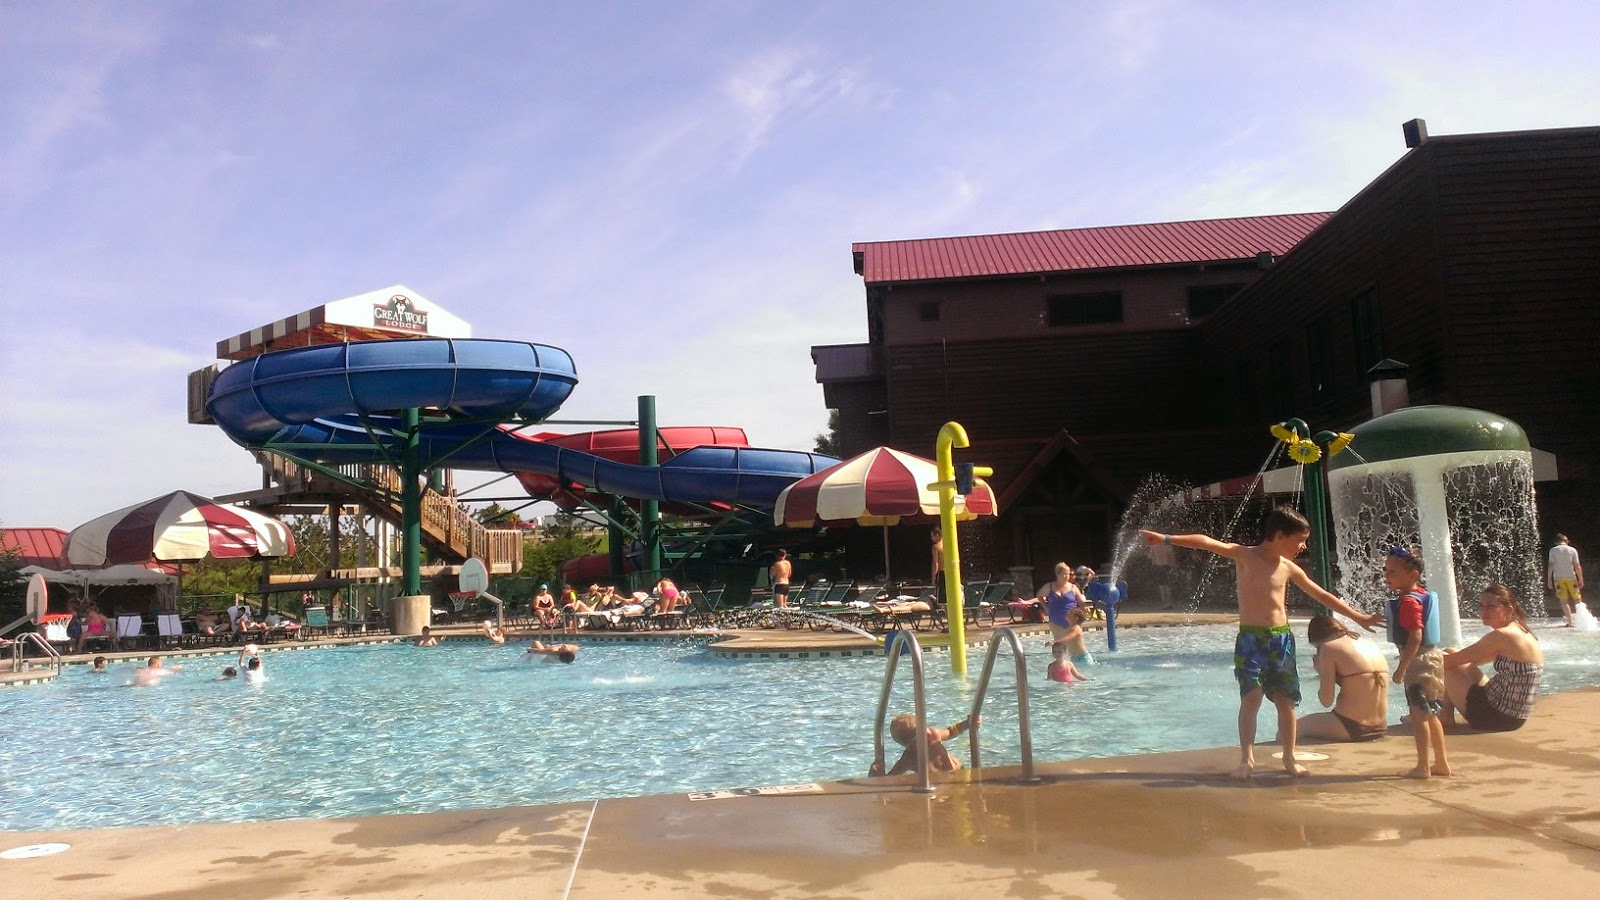 Wisconsin Dells Special Deals Weekly specials and discounted rates to attractions, accommodations, restaurants, and more! Eligibility and notifications to win many Dells area prizes in the Summer and Super Prizes in the Winter to area attractions and more.